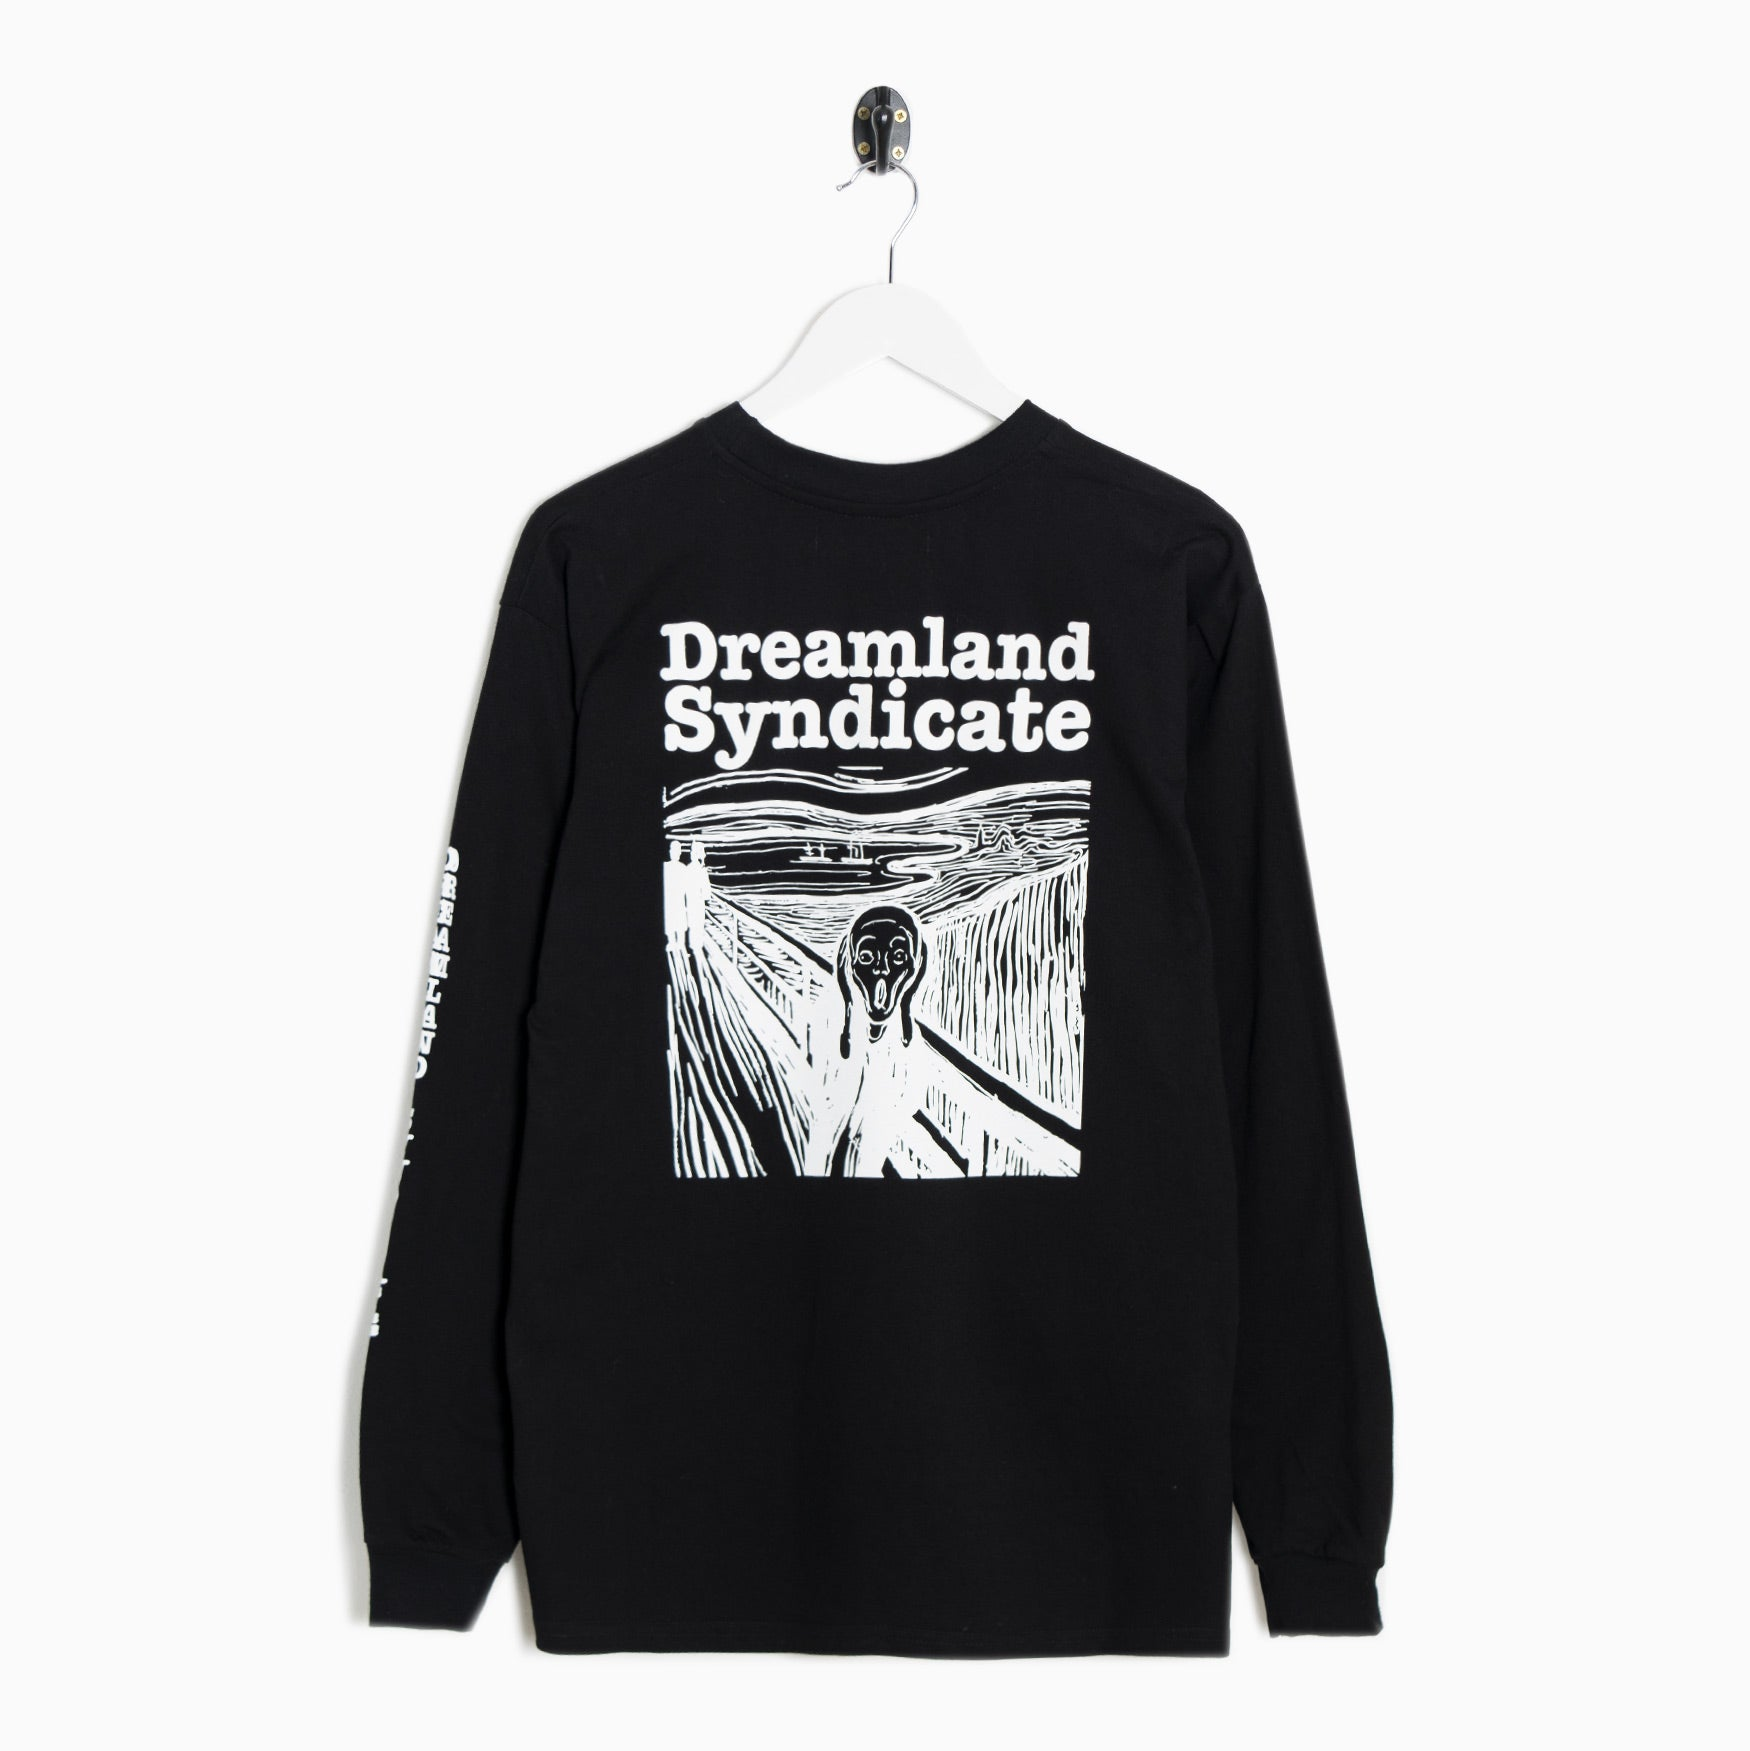 Dreamland Syndicate Nightmare Long Sleeve T-Shirt - Black